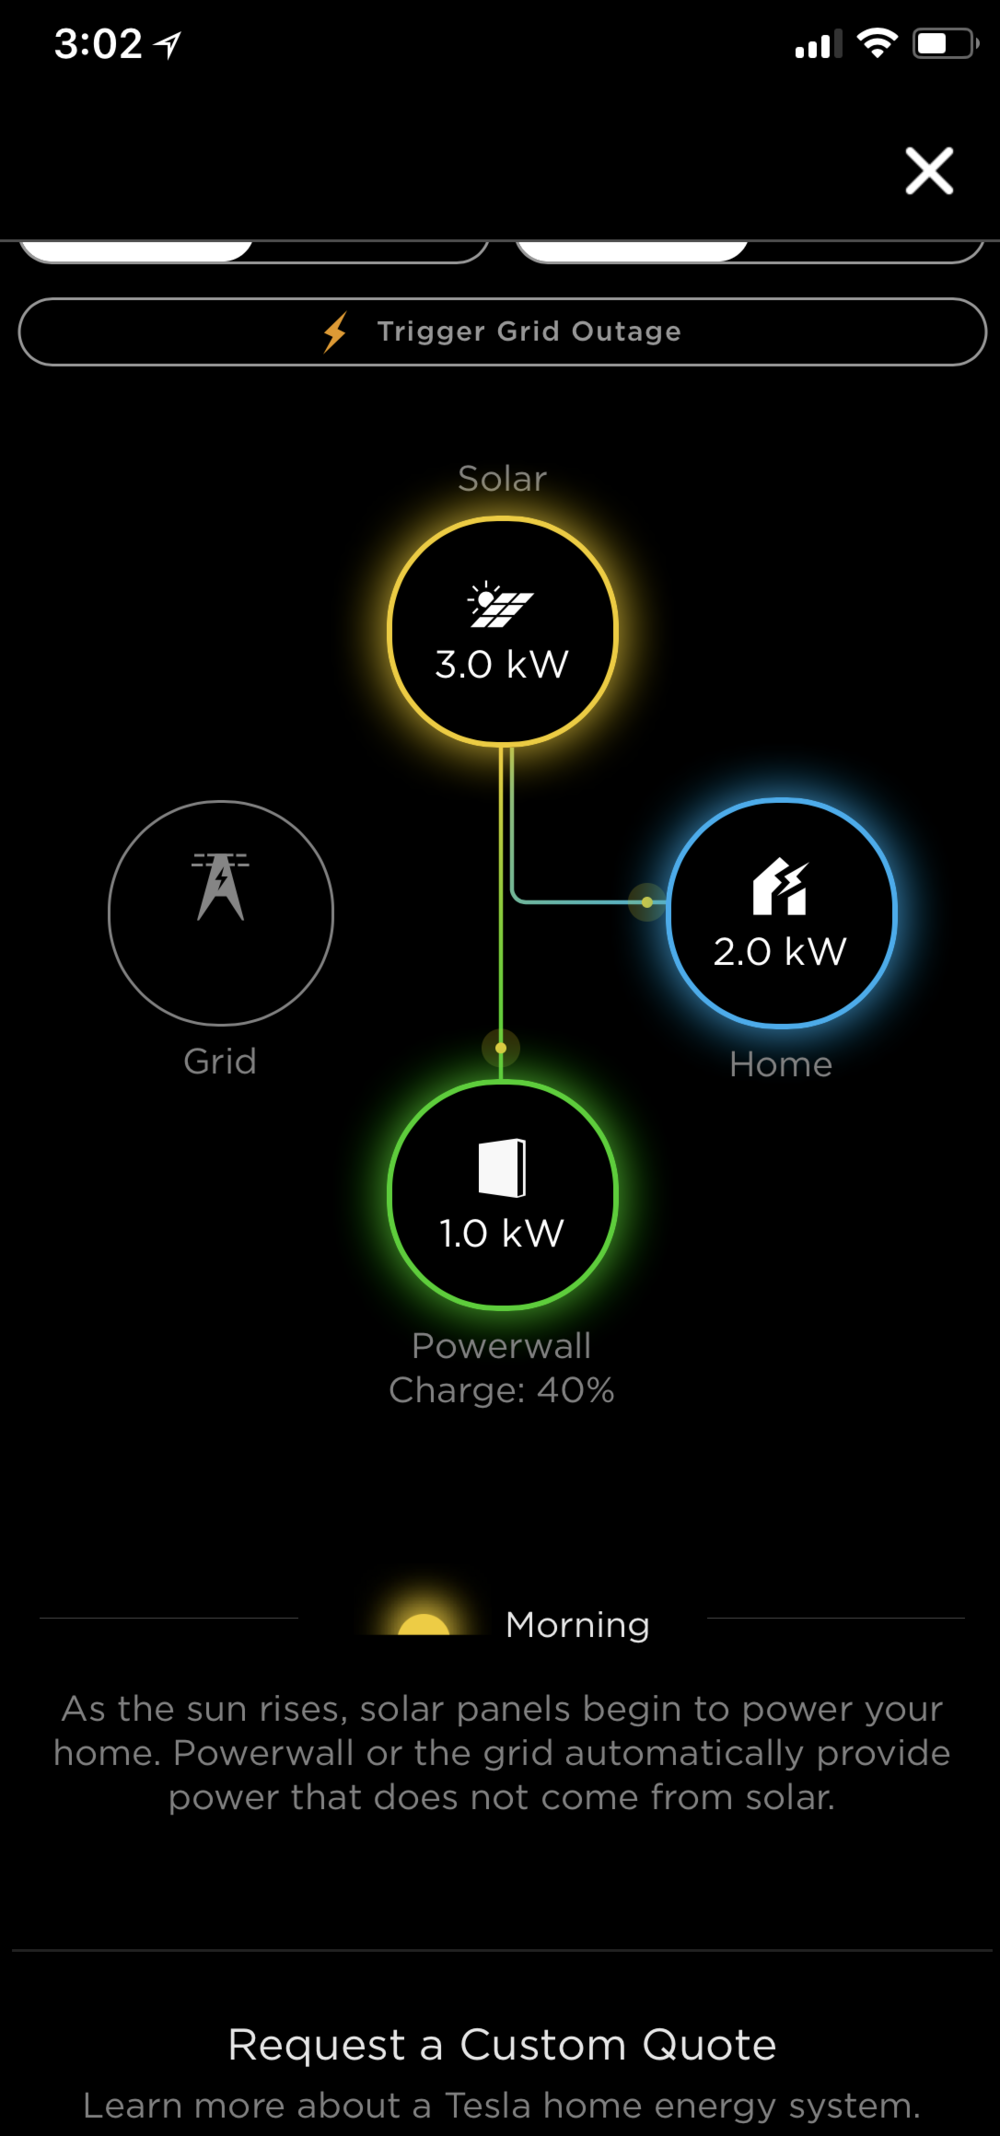 This is a view of the mobile app monitoring system. As you can see, the moment the sun rises, the home begins to generate power to the solar panels and your Tesla Powerwall. This is an example of a 3kW solar system generating power to the home (2.0 kW) and the Powerwall battery (1.0 kW).